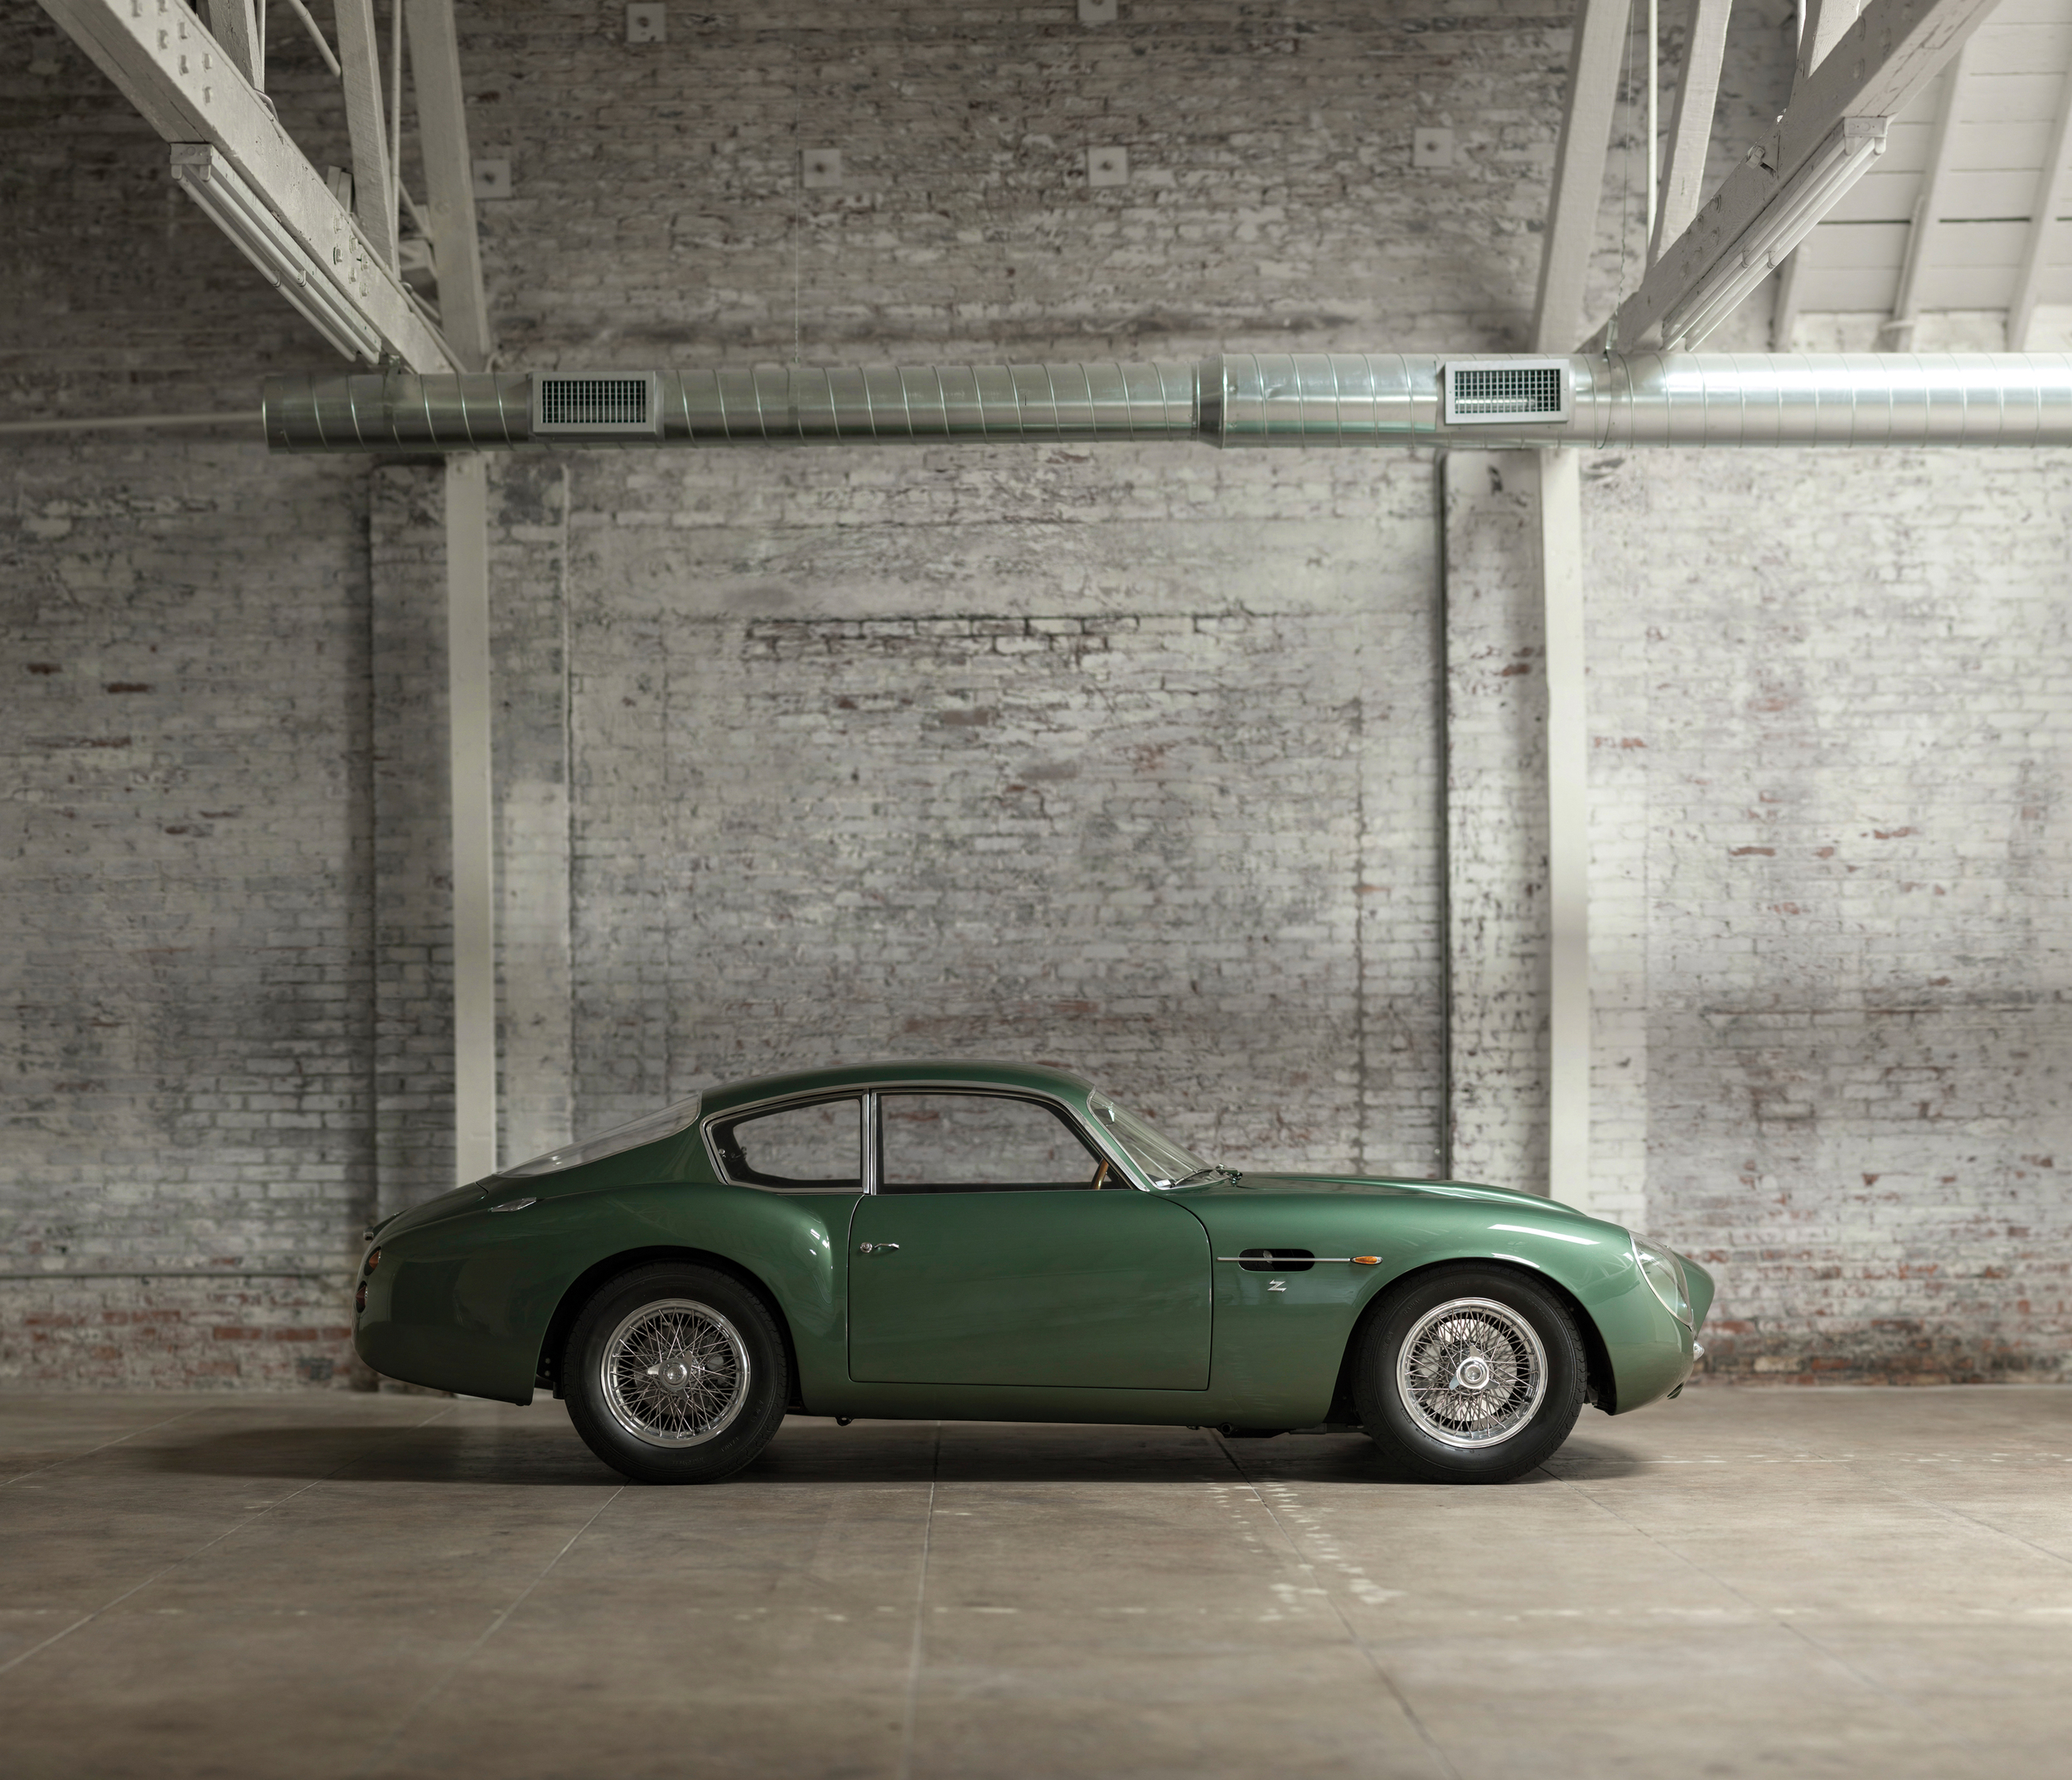 Aston Martin DB4 GT Zagato Expected To Fetch Over $16M